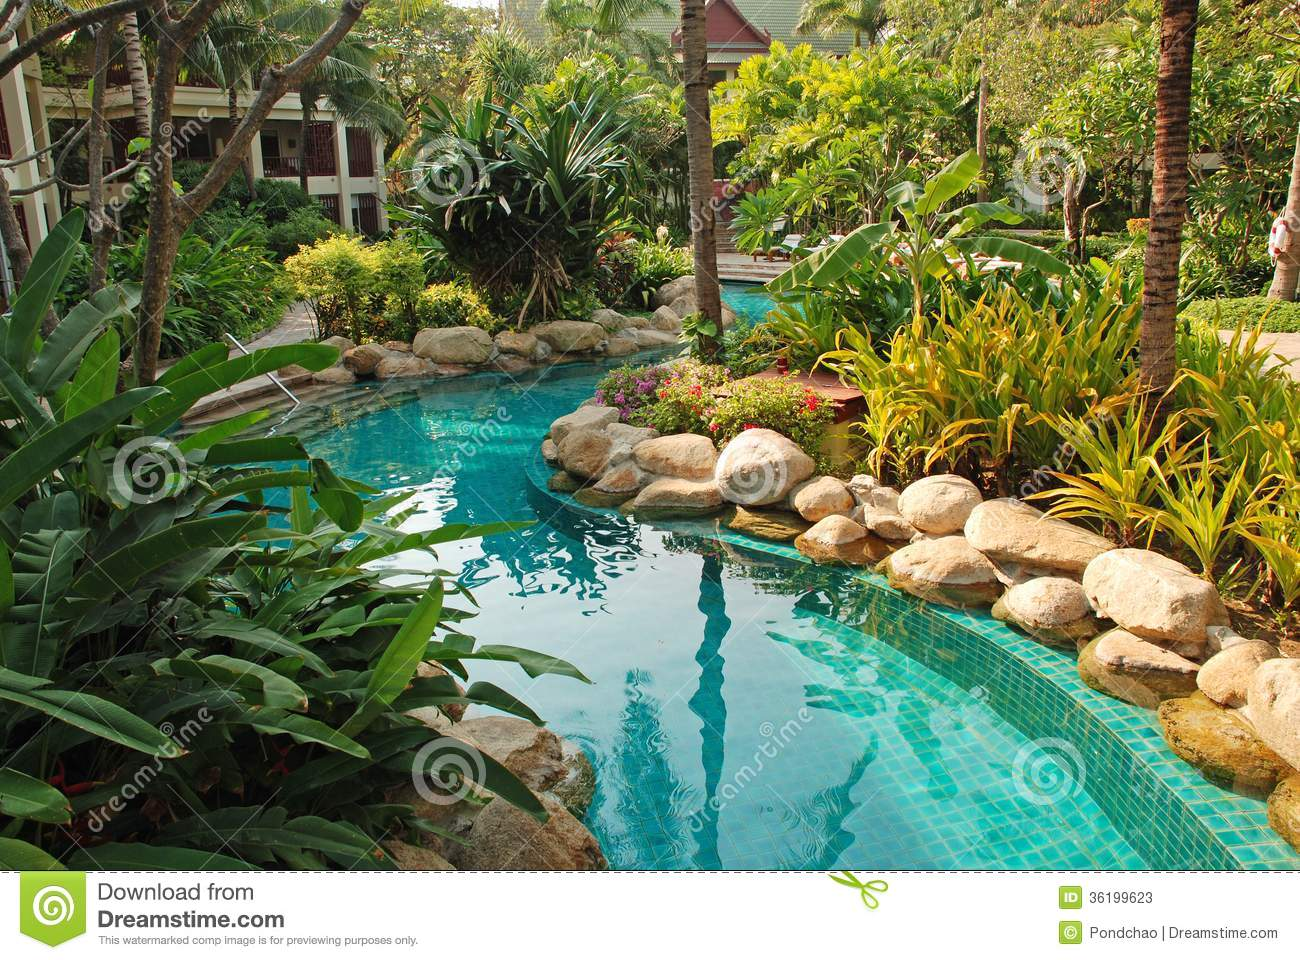 Swimming pool garden  Nice Swimming Pool In Garden Stock Photos - Image: 36199623